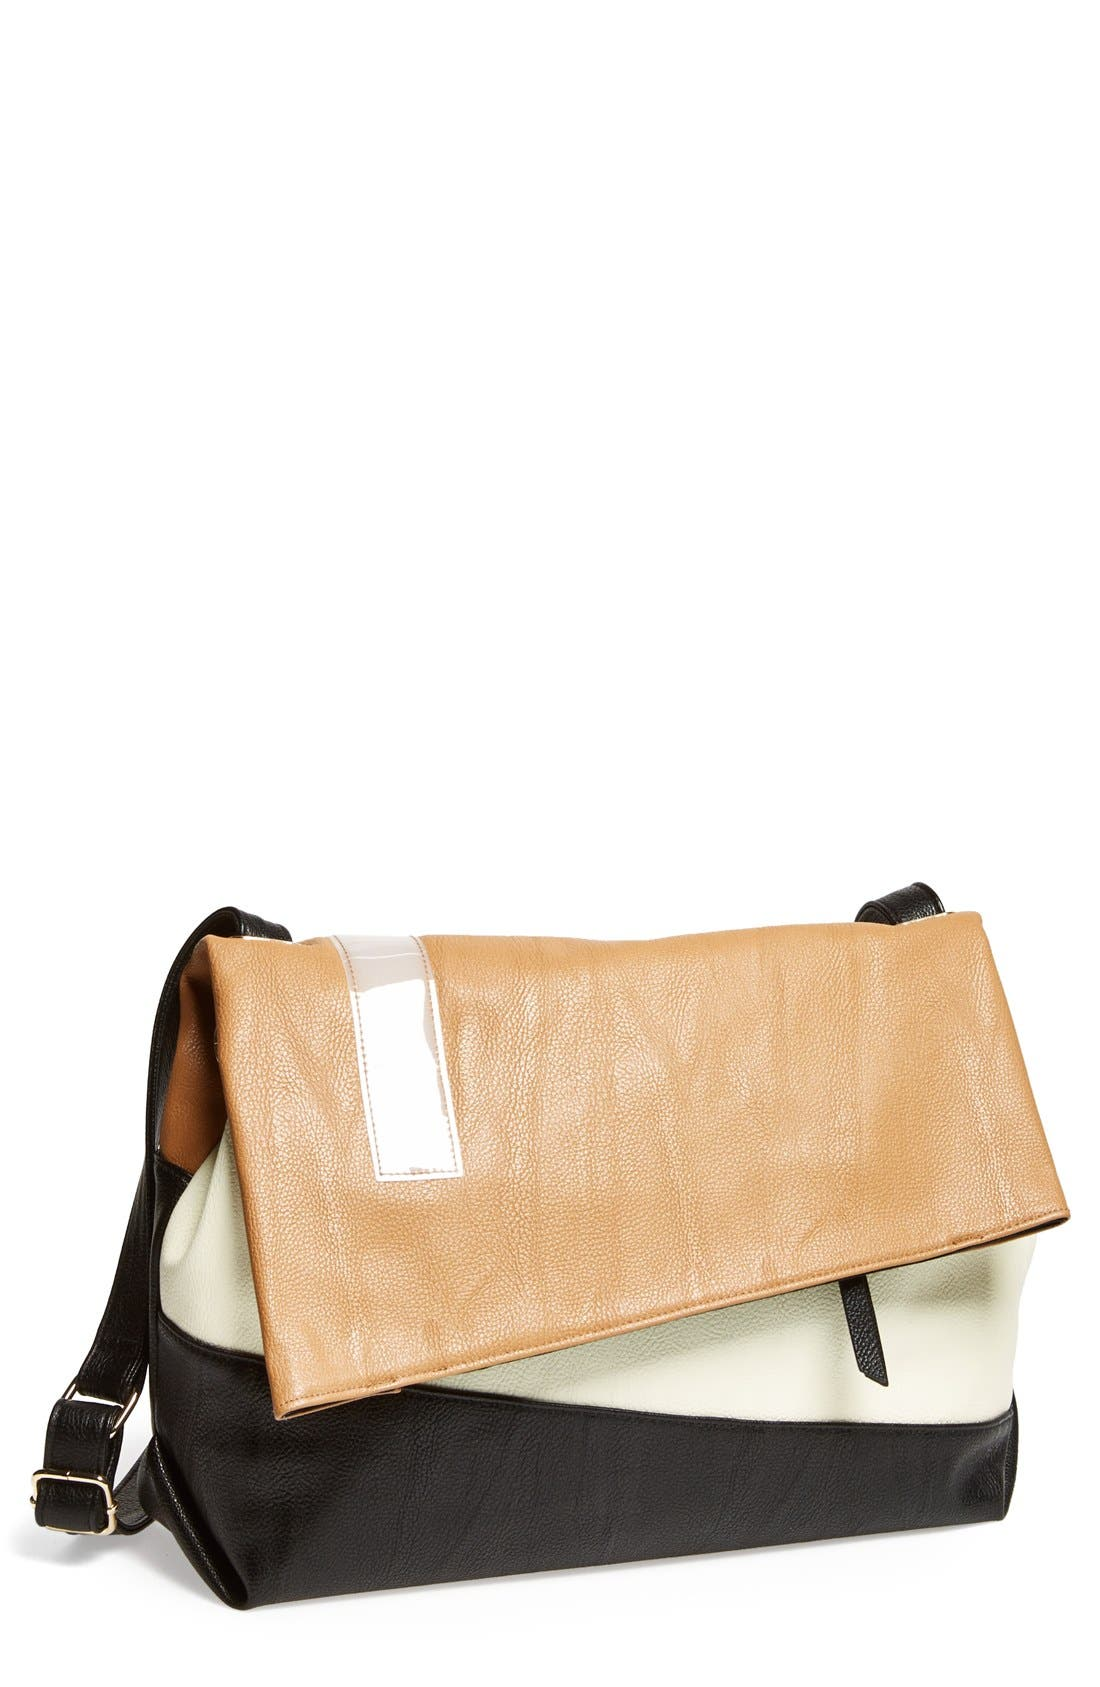 Main Image - POVERTY FLATS by rian 'Large' Asymmetrical Faux Leather Crossbody Bag